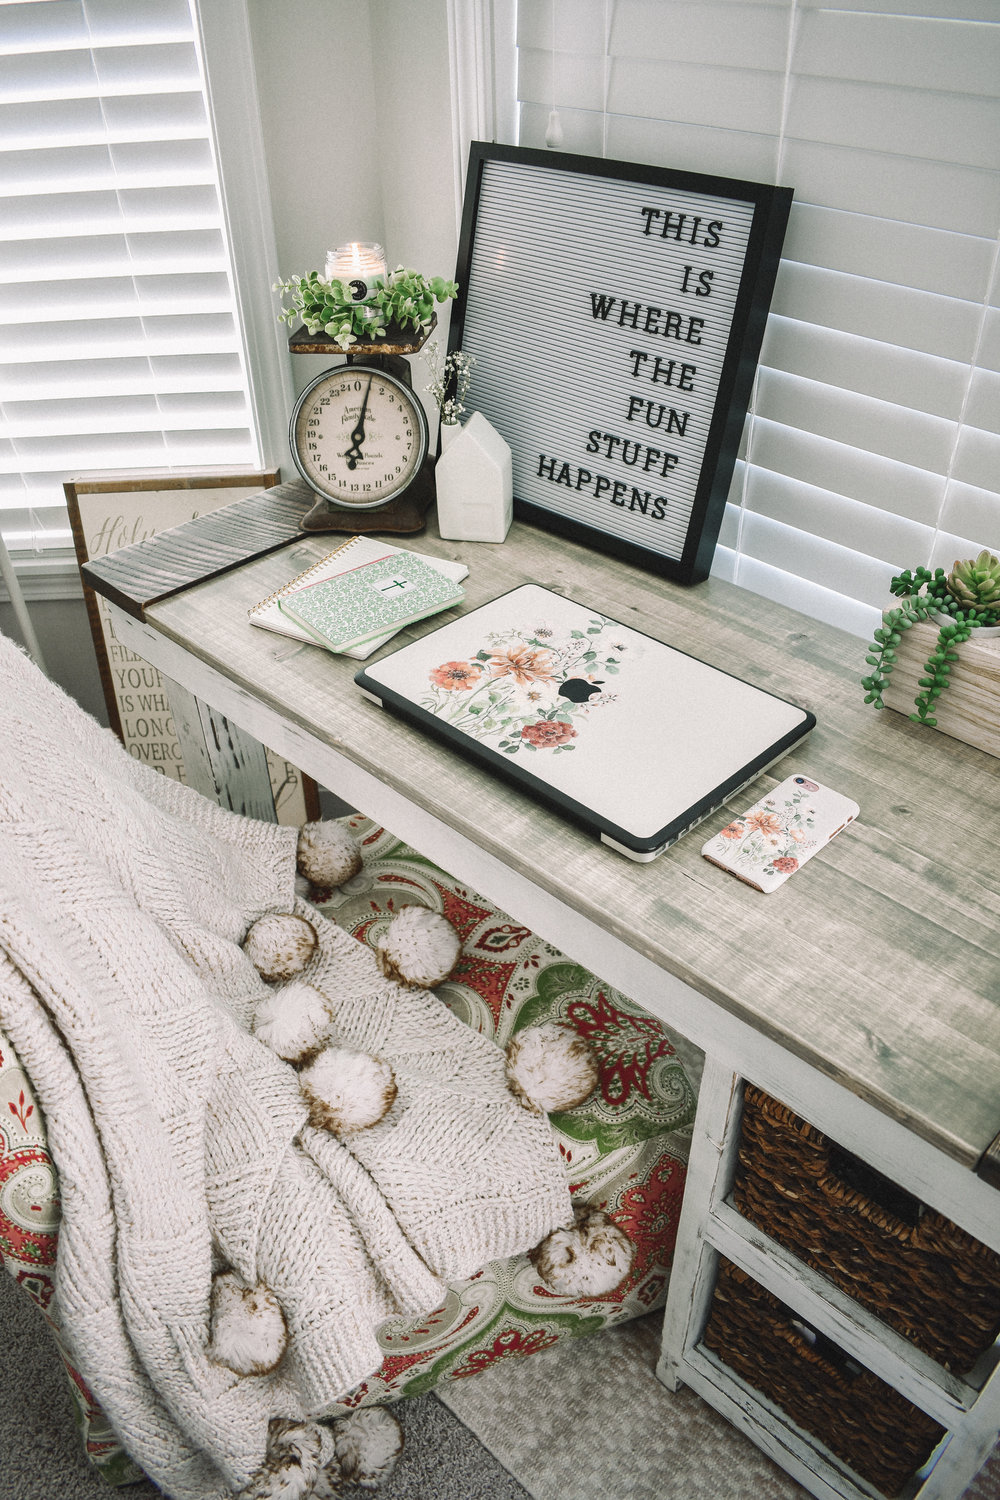 Welcome to My Work Space | Office Goals | Desk Decor | Desk Goals | Home Decor | Antique Decor | Distressed Decor | Work From Home